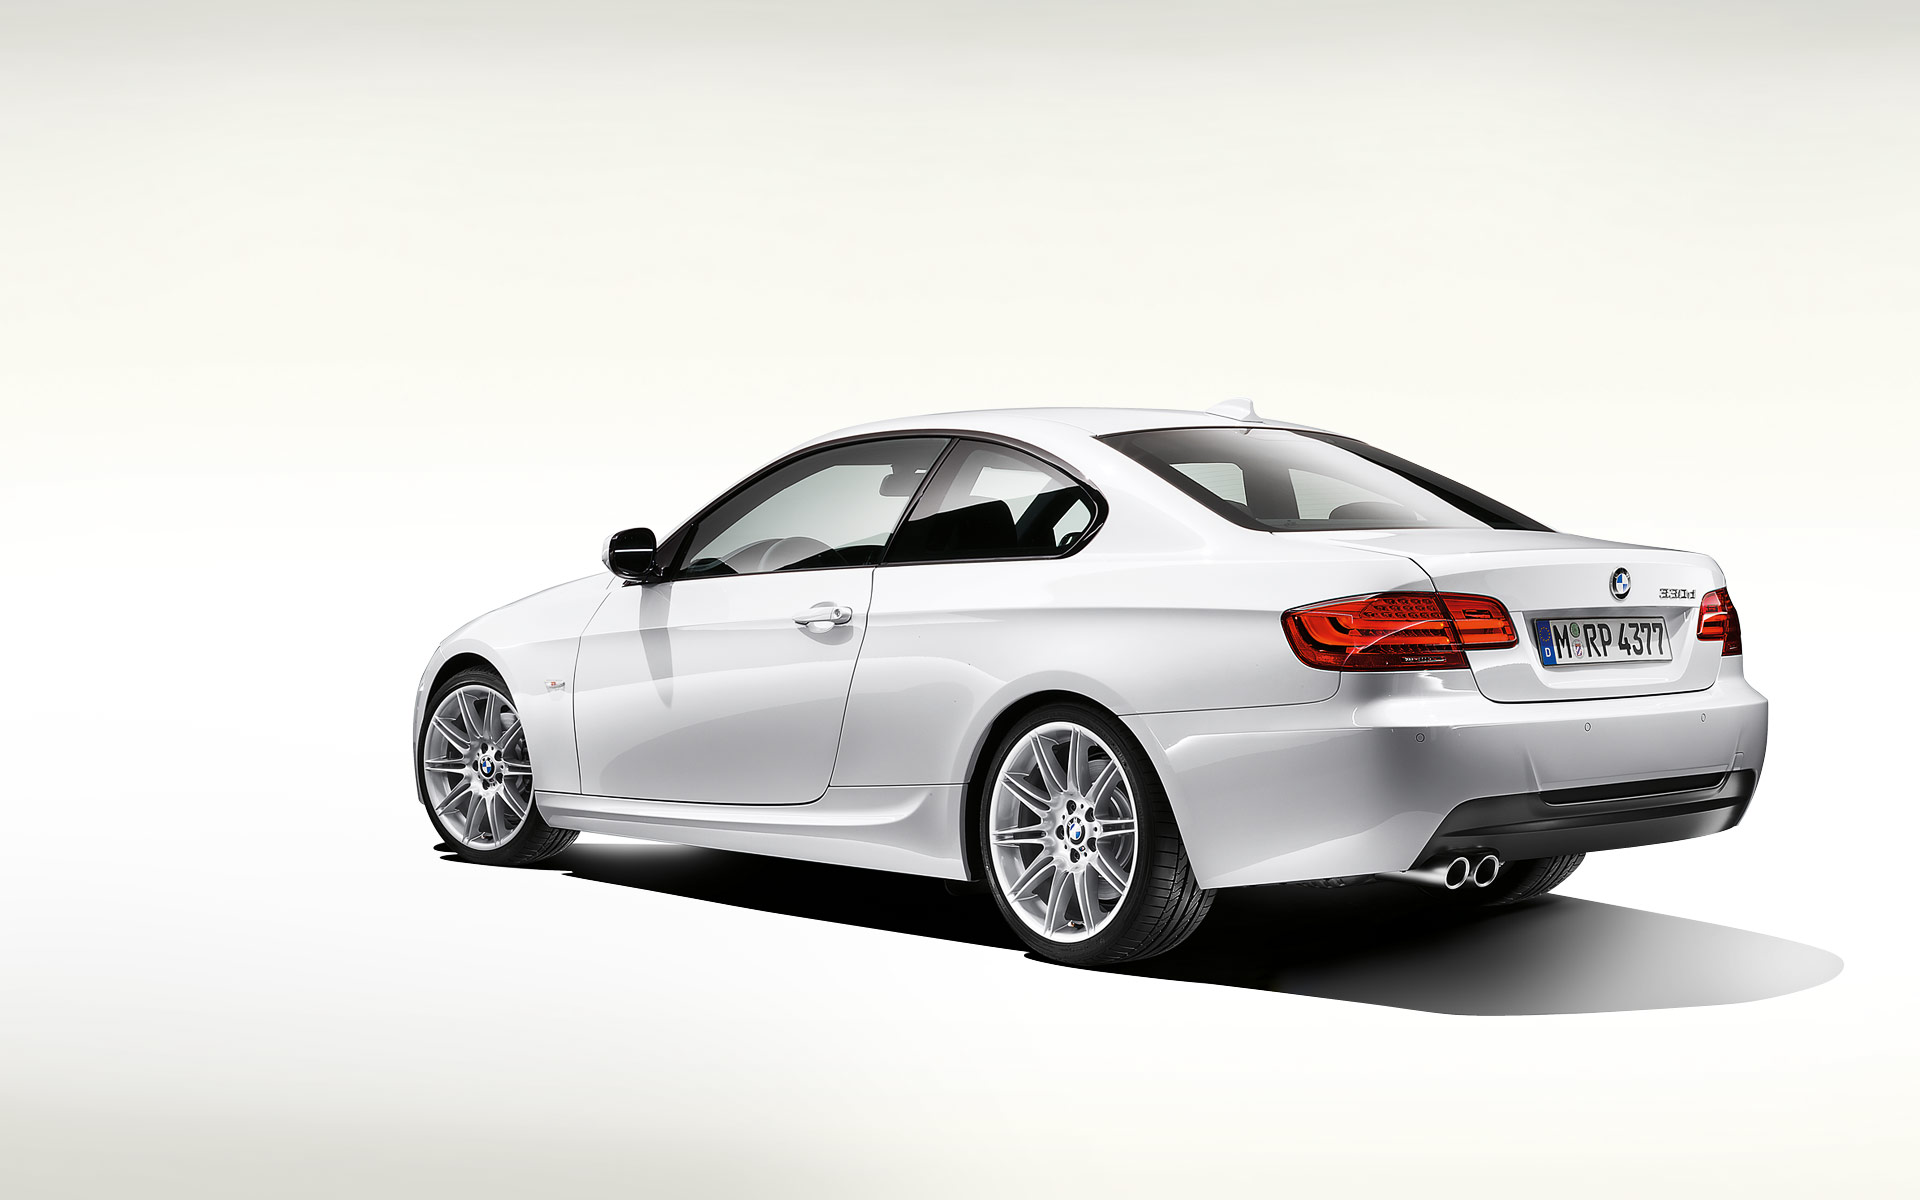 bmw 3 series coupe (e92) 2016 images